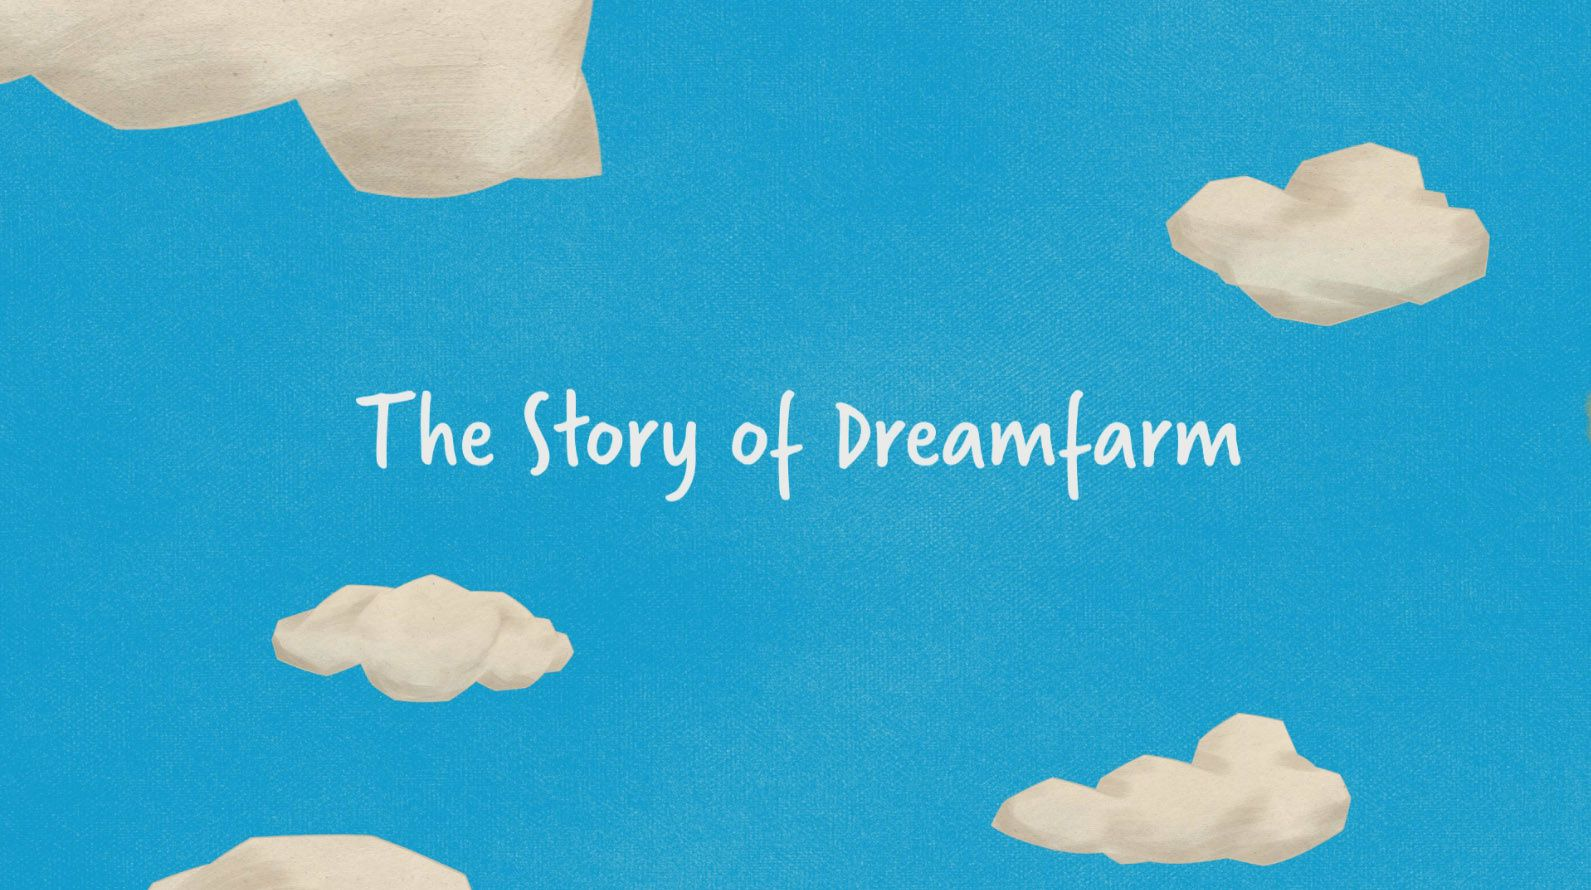 The Story of Dreamfarm